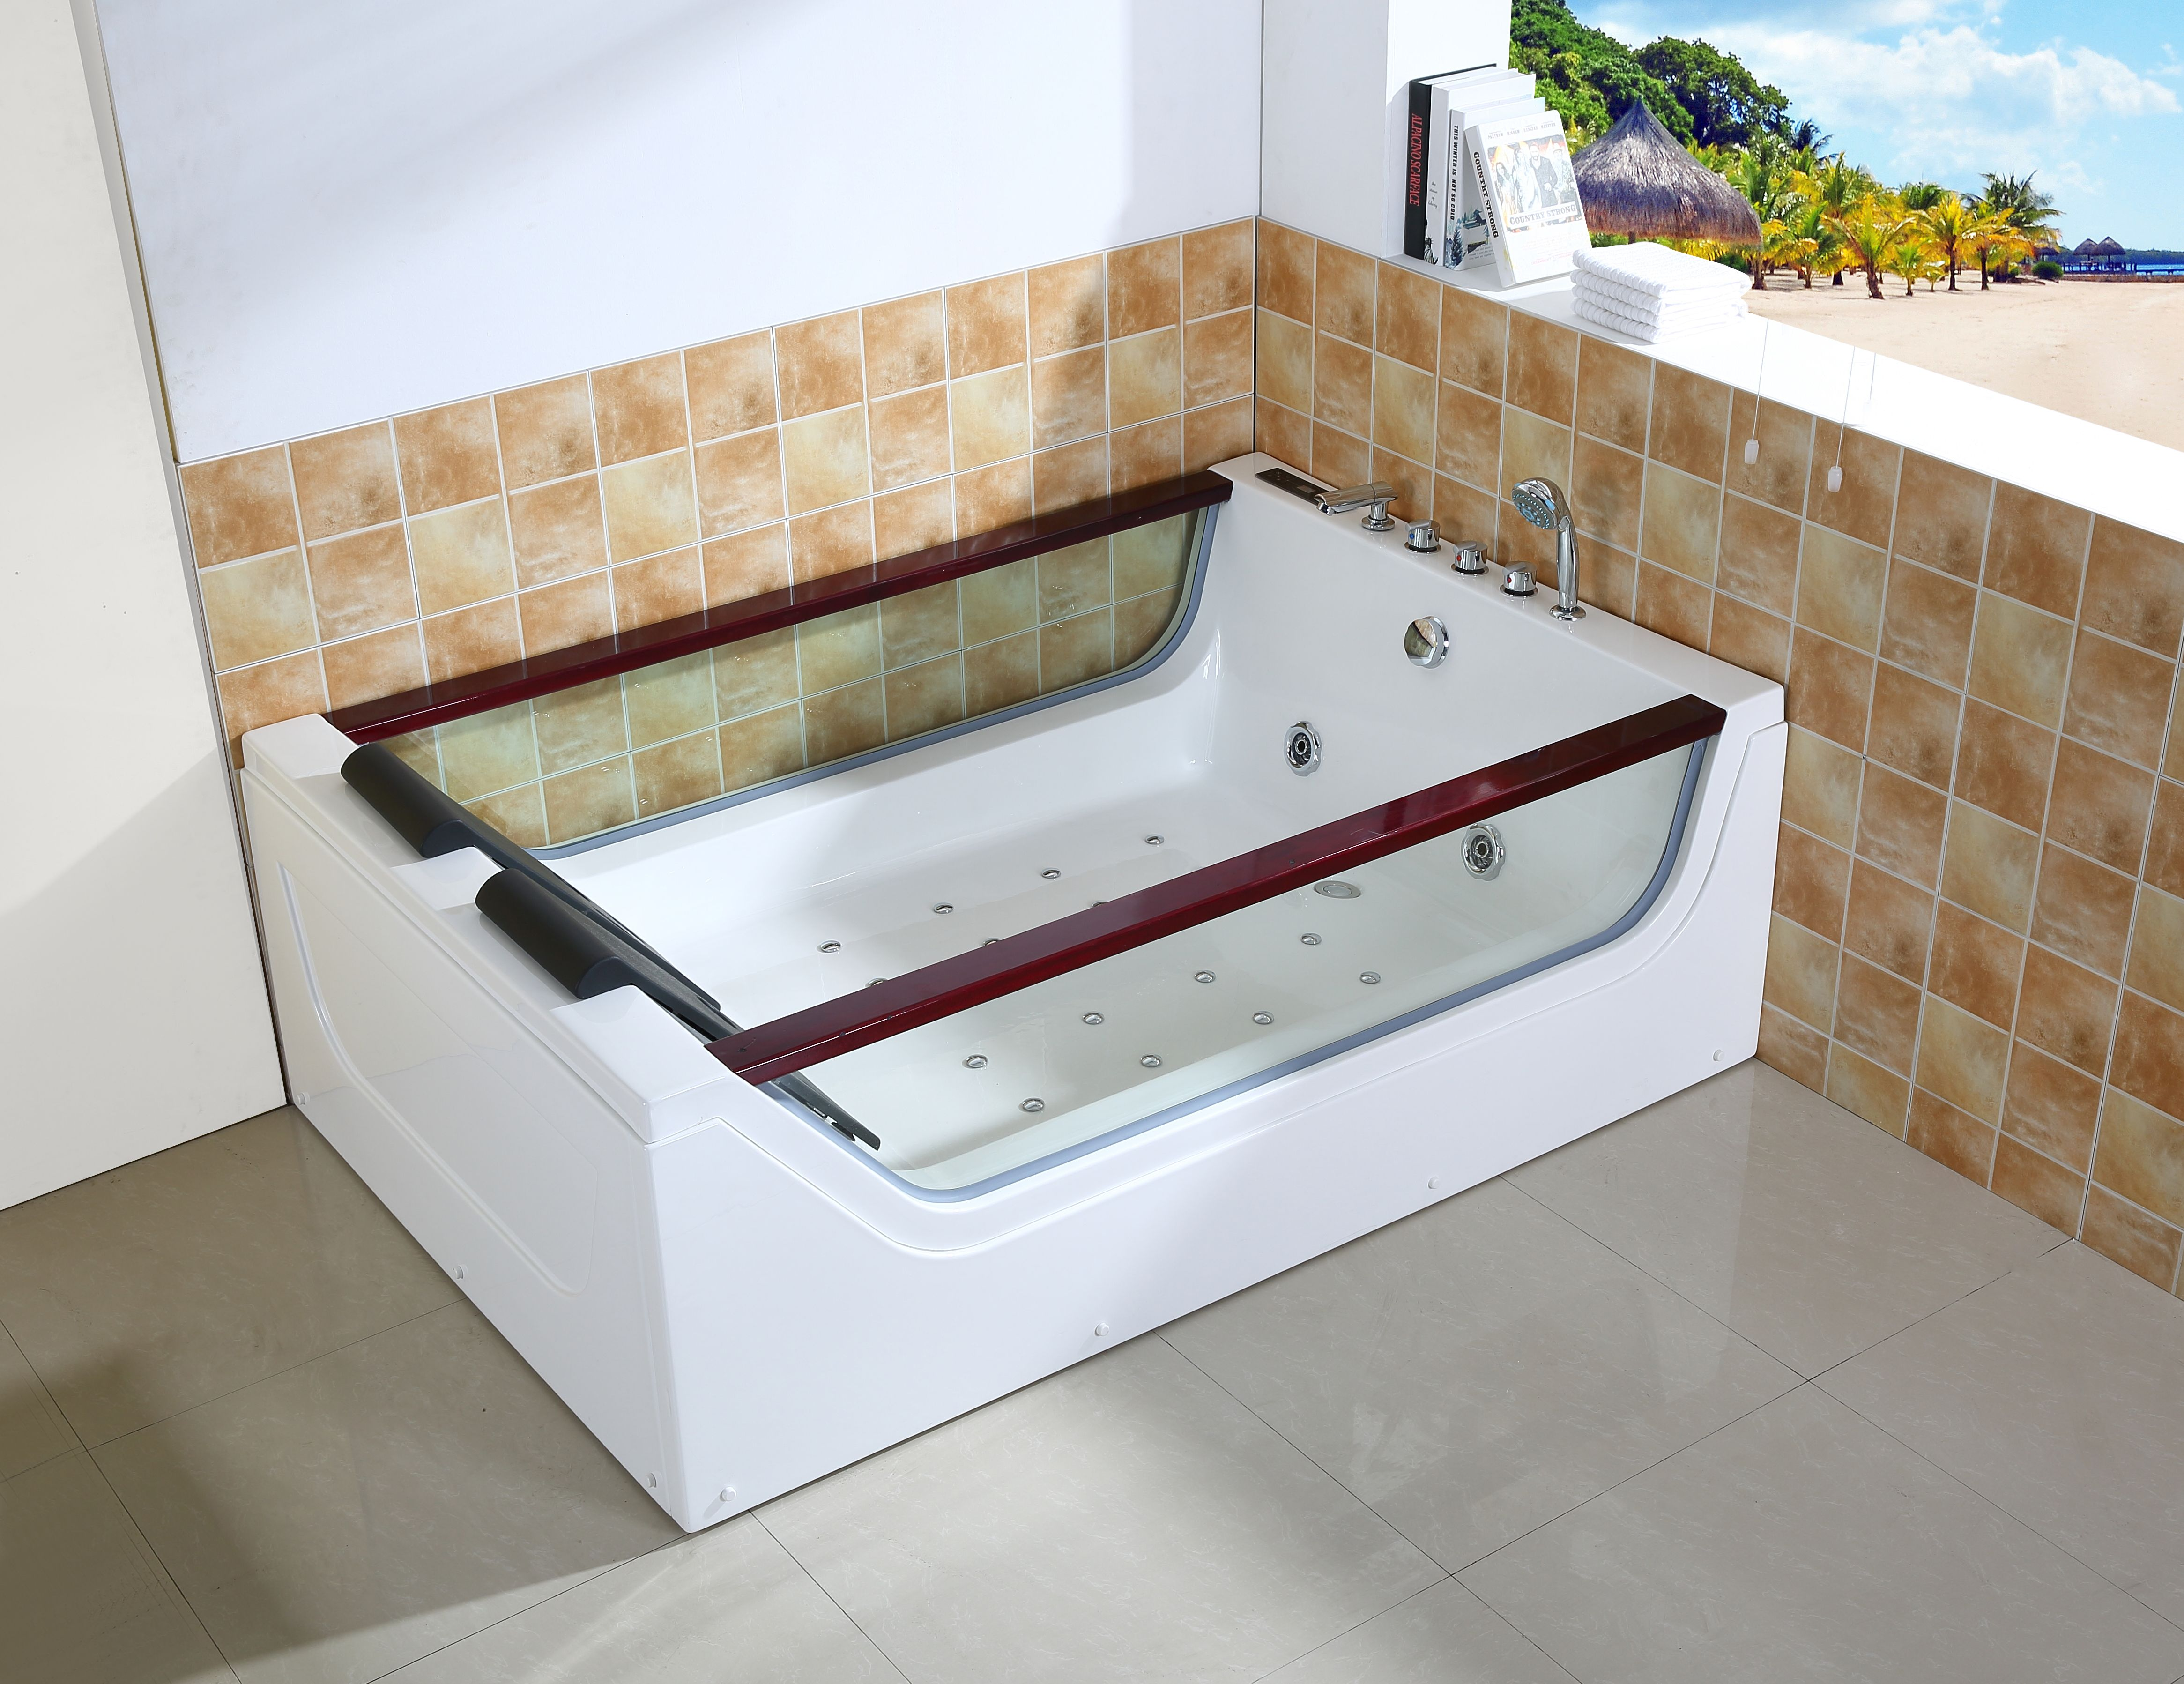 Pin by Candy Chan on Massage bathtub | Pinterest | Clear acrylic ...